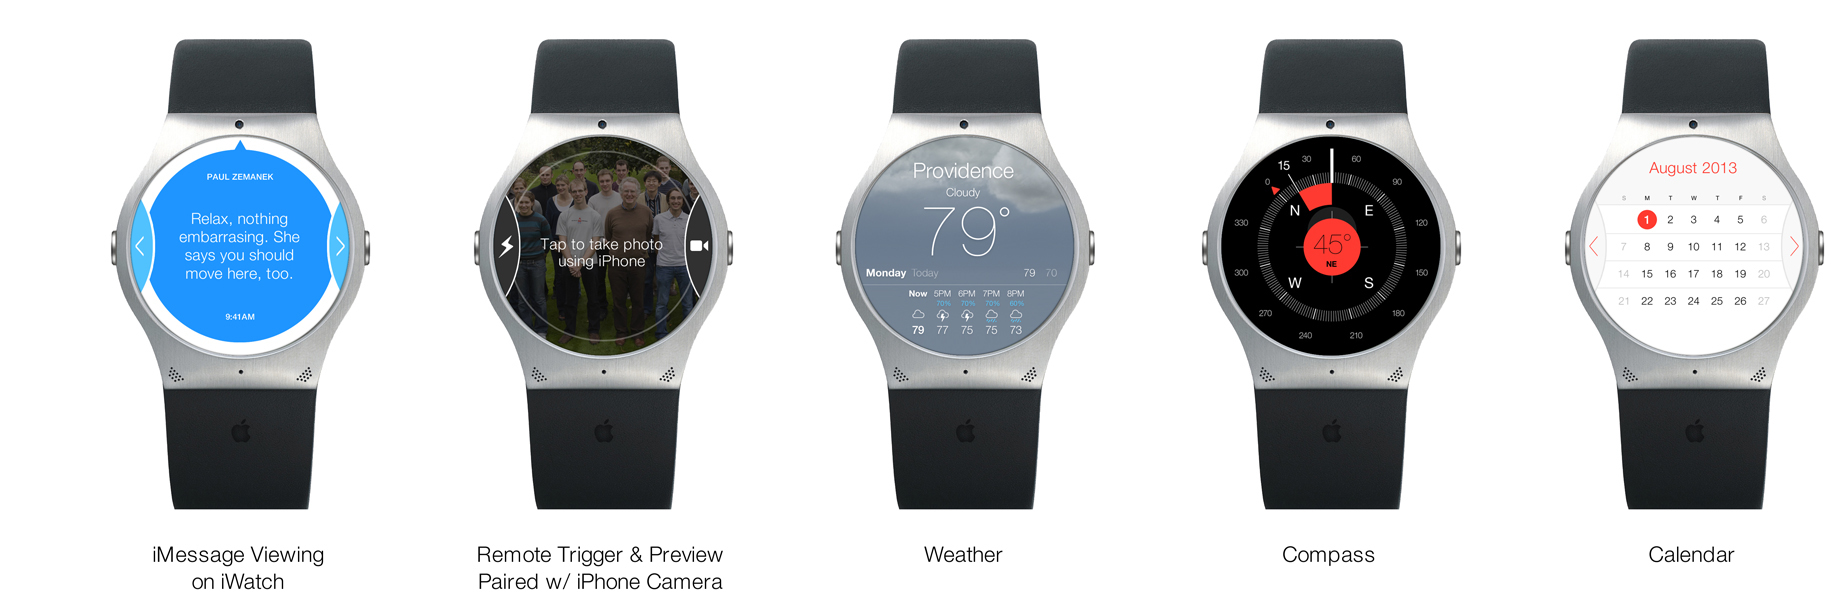 iWatch-Concept (2)